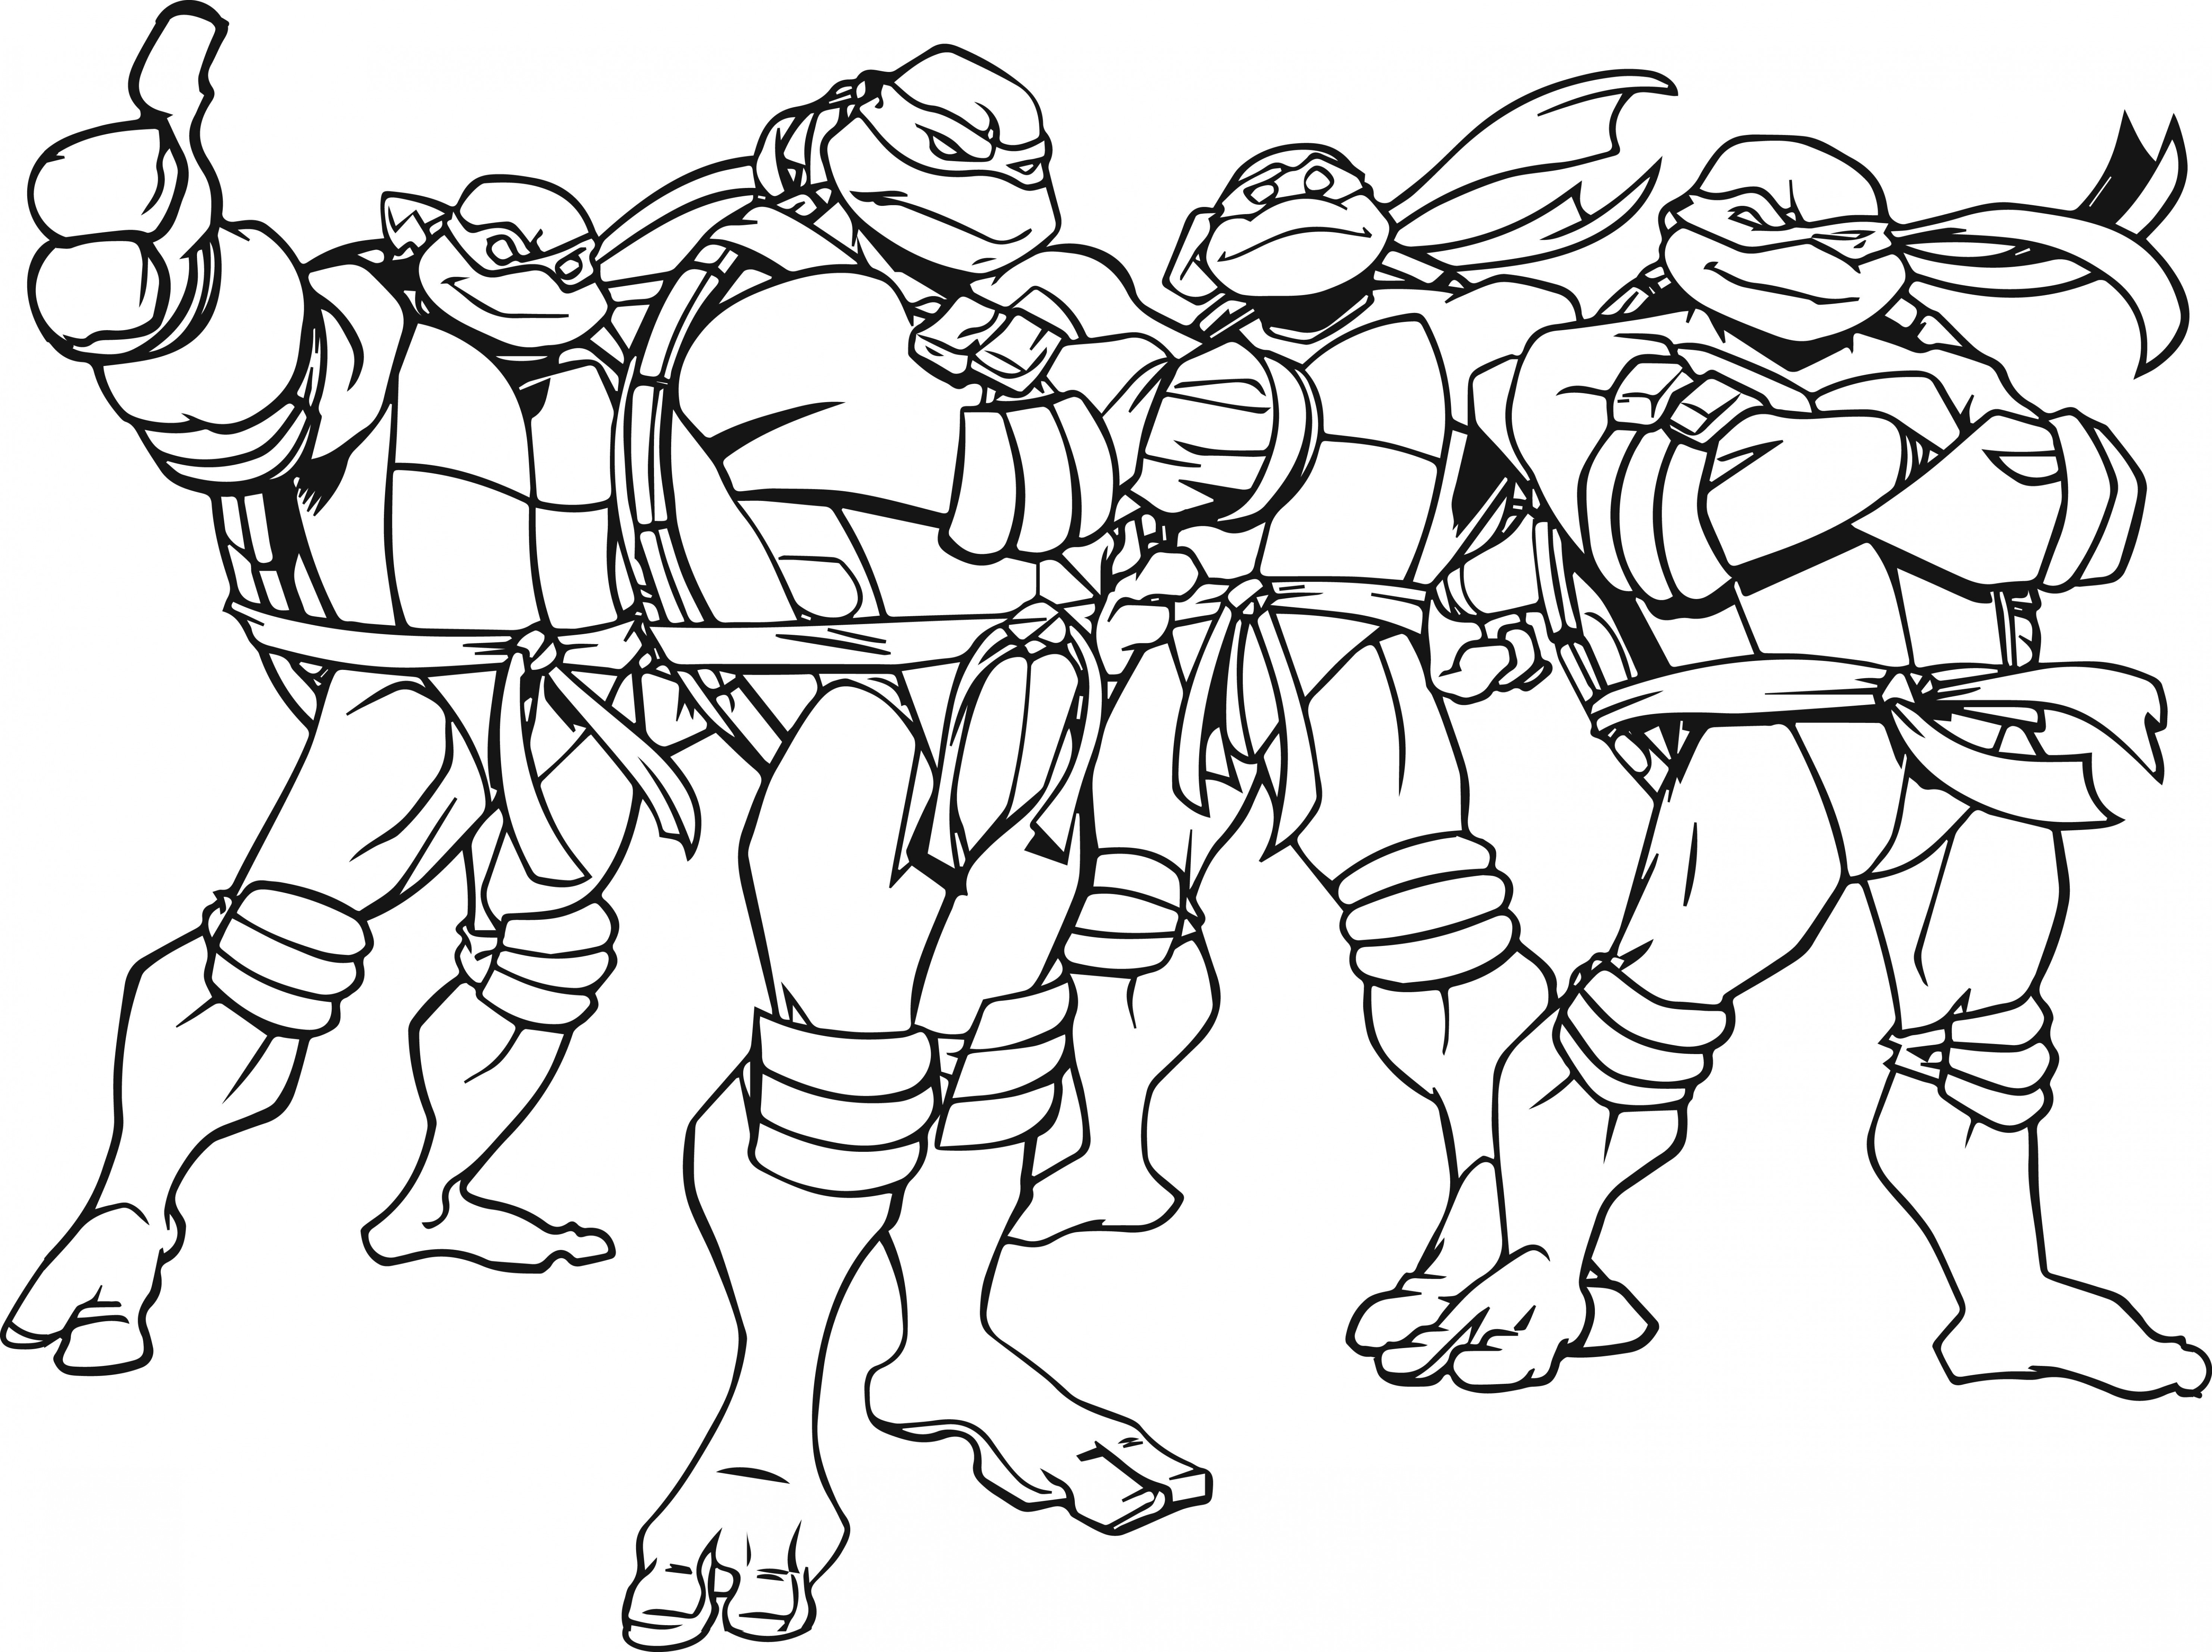 teenage ninja turtles coloring pages get this free teenage mutant ninja turtles coloring pages ninja teenage coloring pages turtles